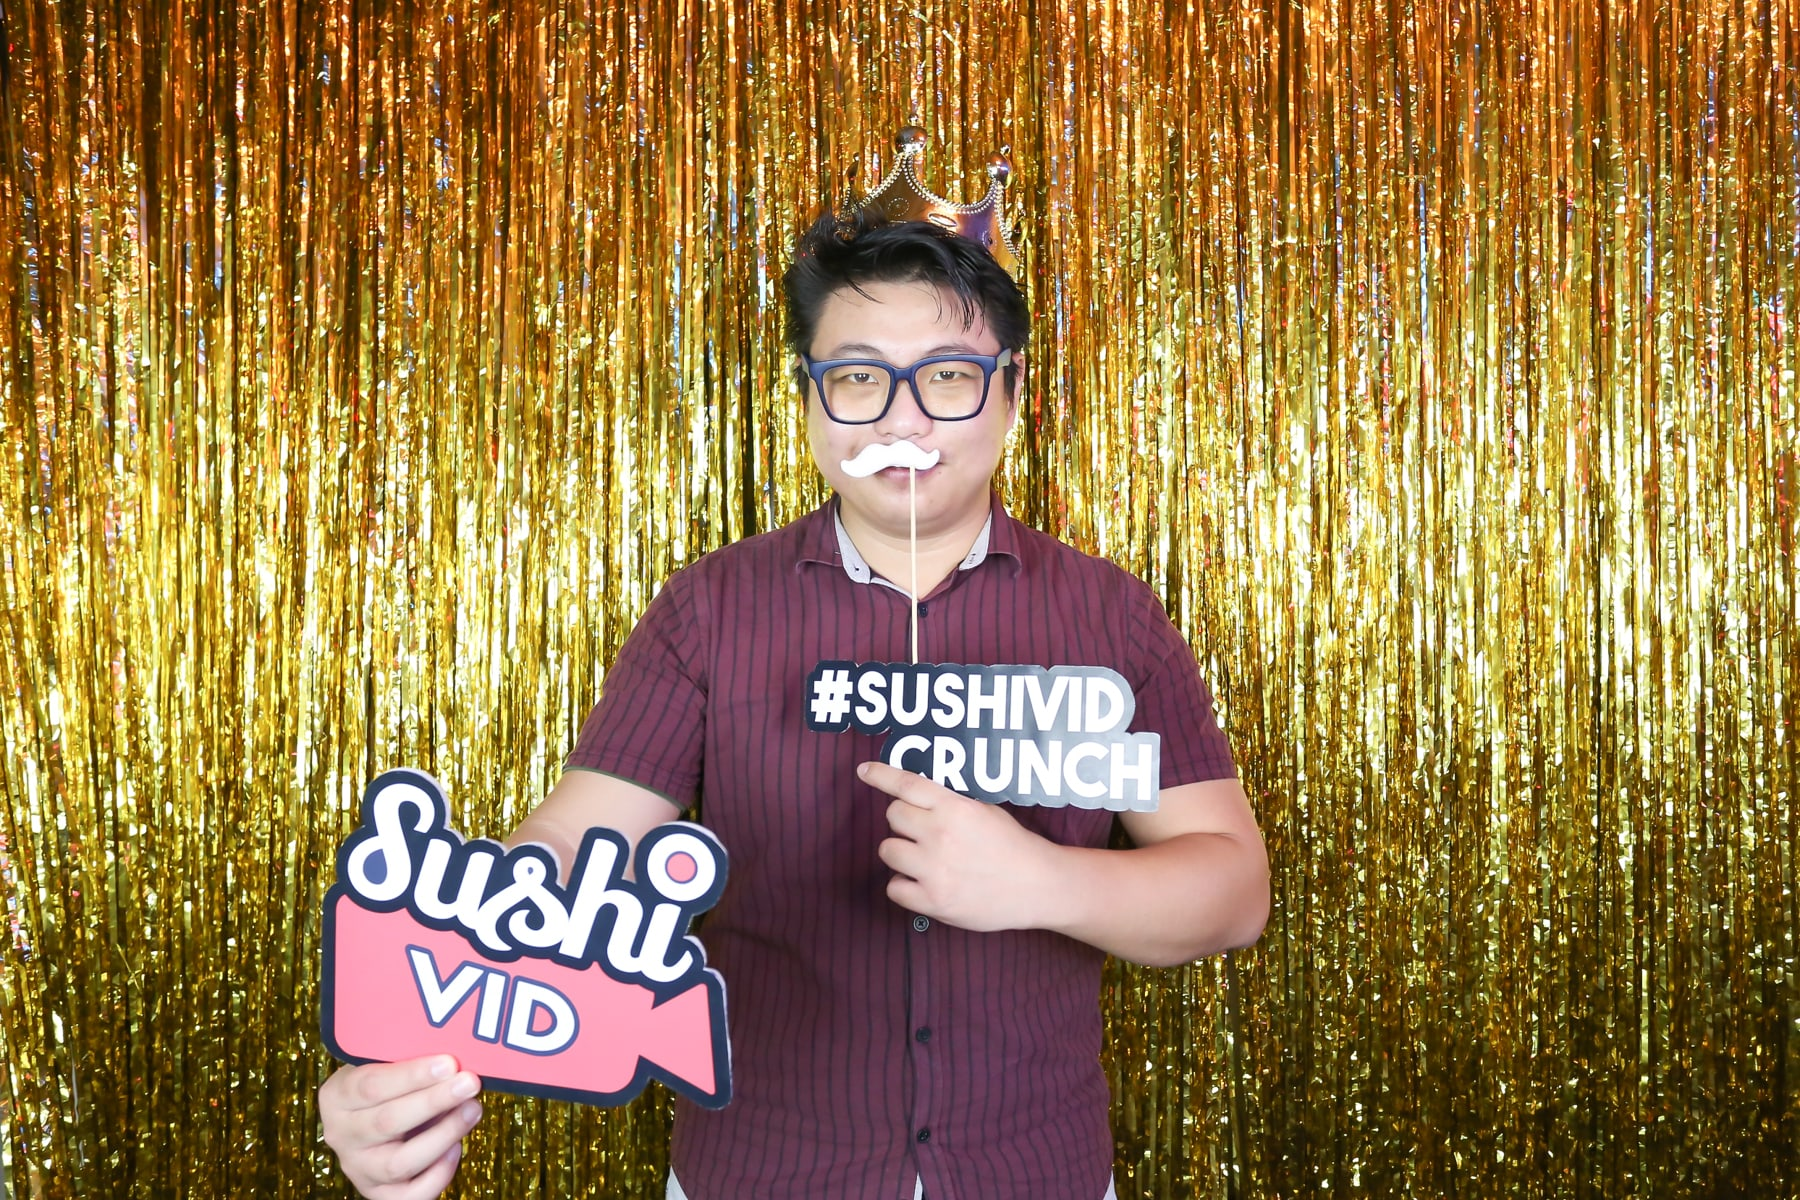 Sushivid+crunch+tagbooth+154